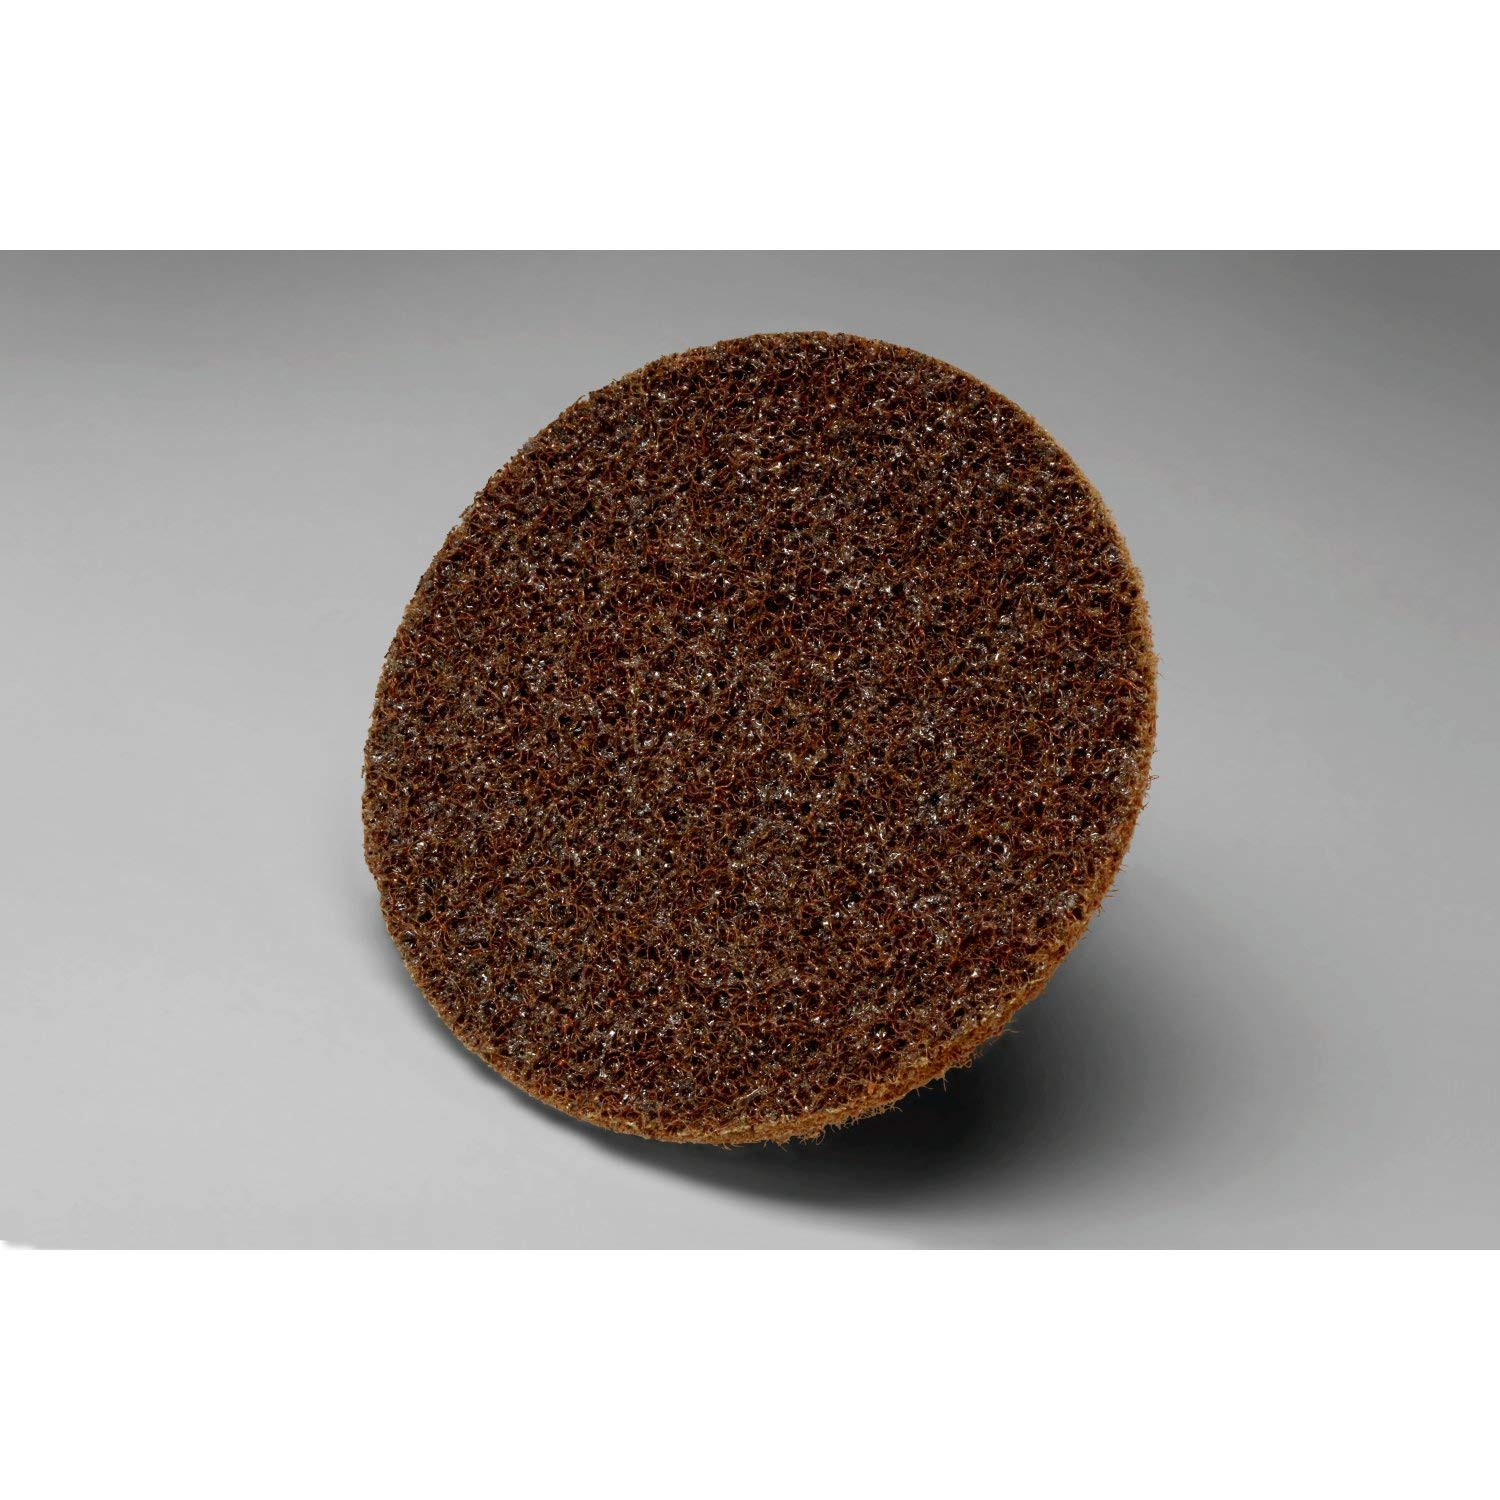 B0088QCEA2 Scotch-Brite Surface Conditioning Disc, 5 in x NH A CRS, 50 per case 71cJCDW-w-L._SL1500_